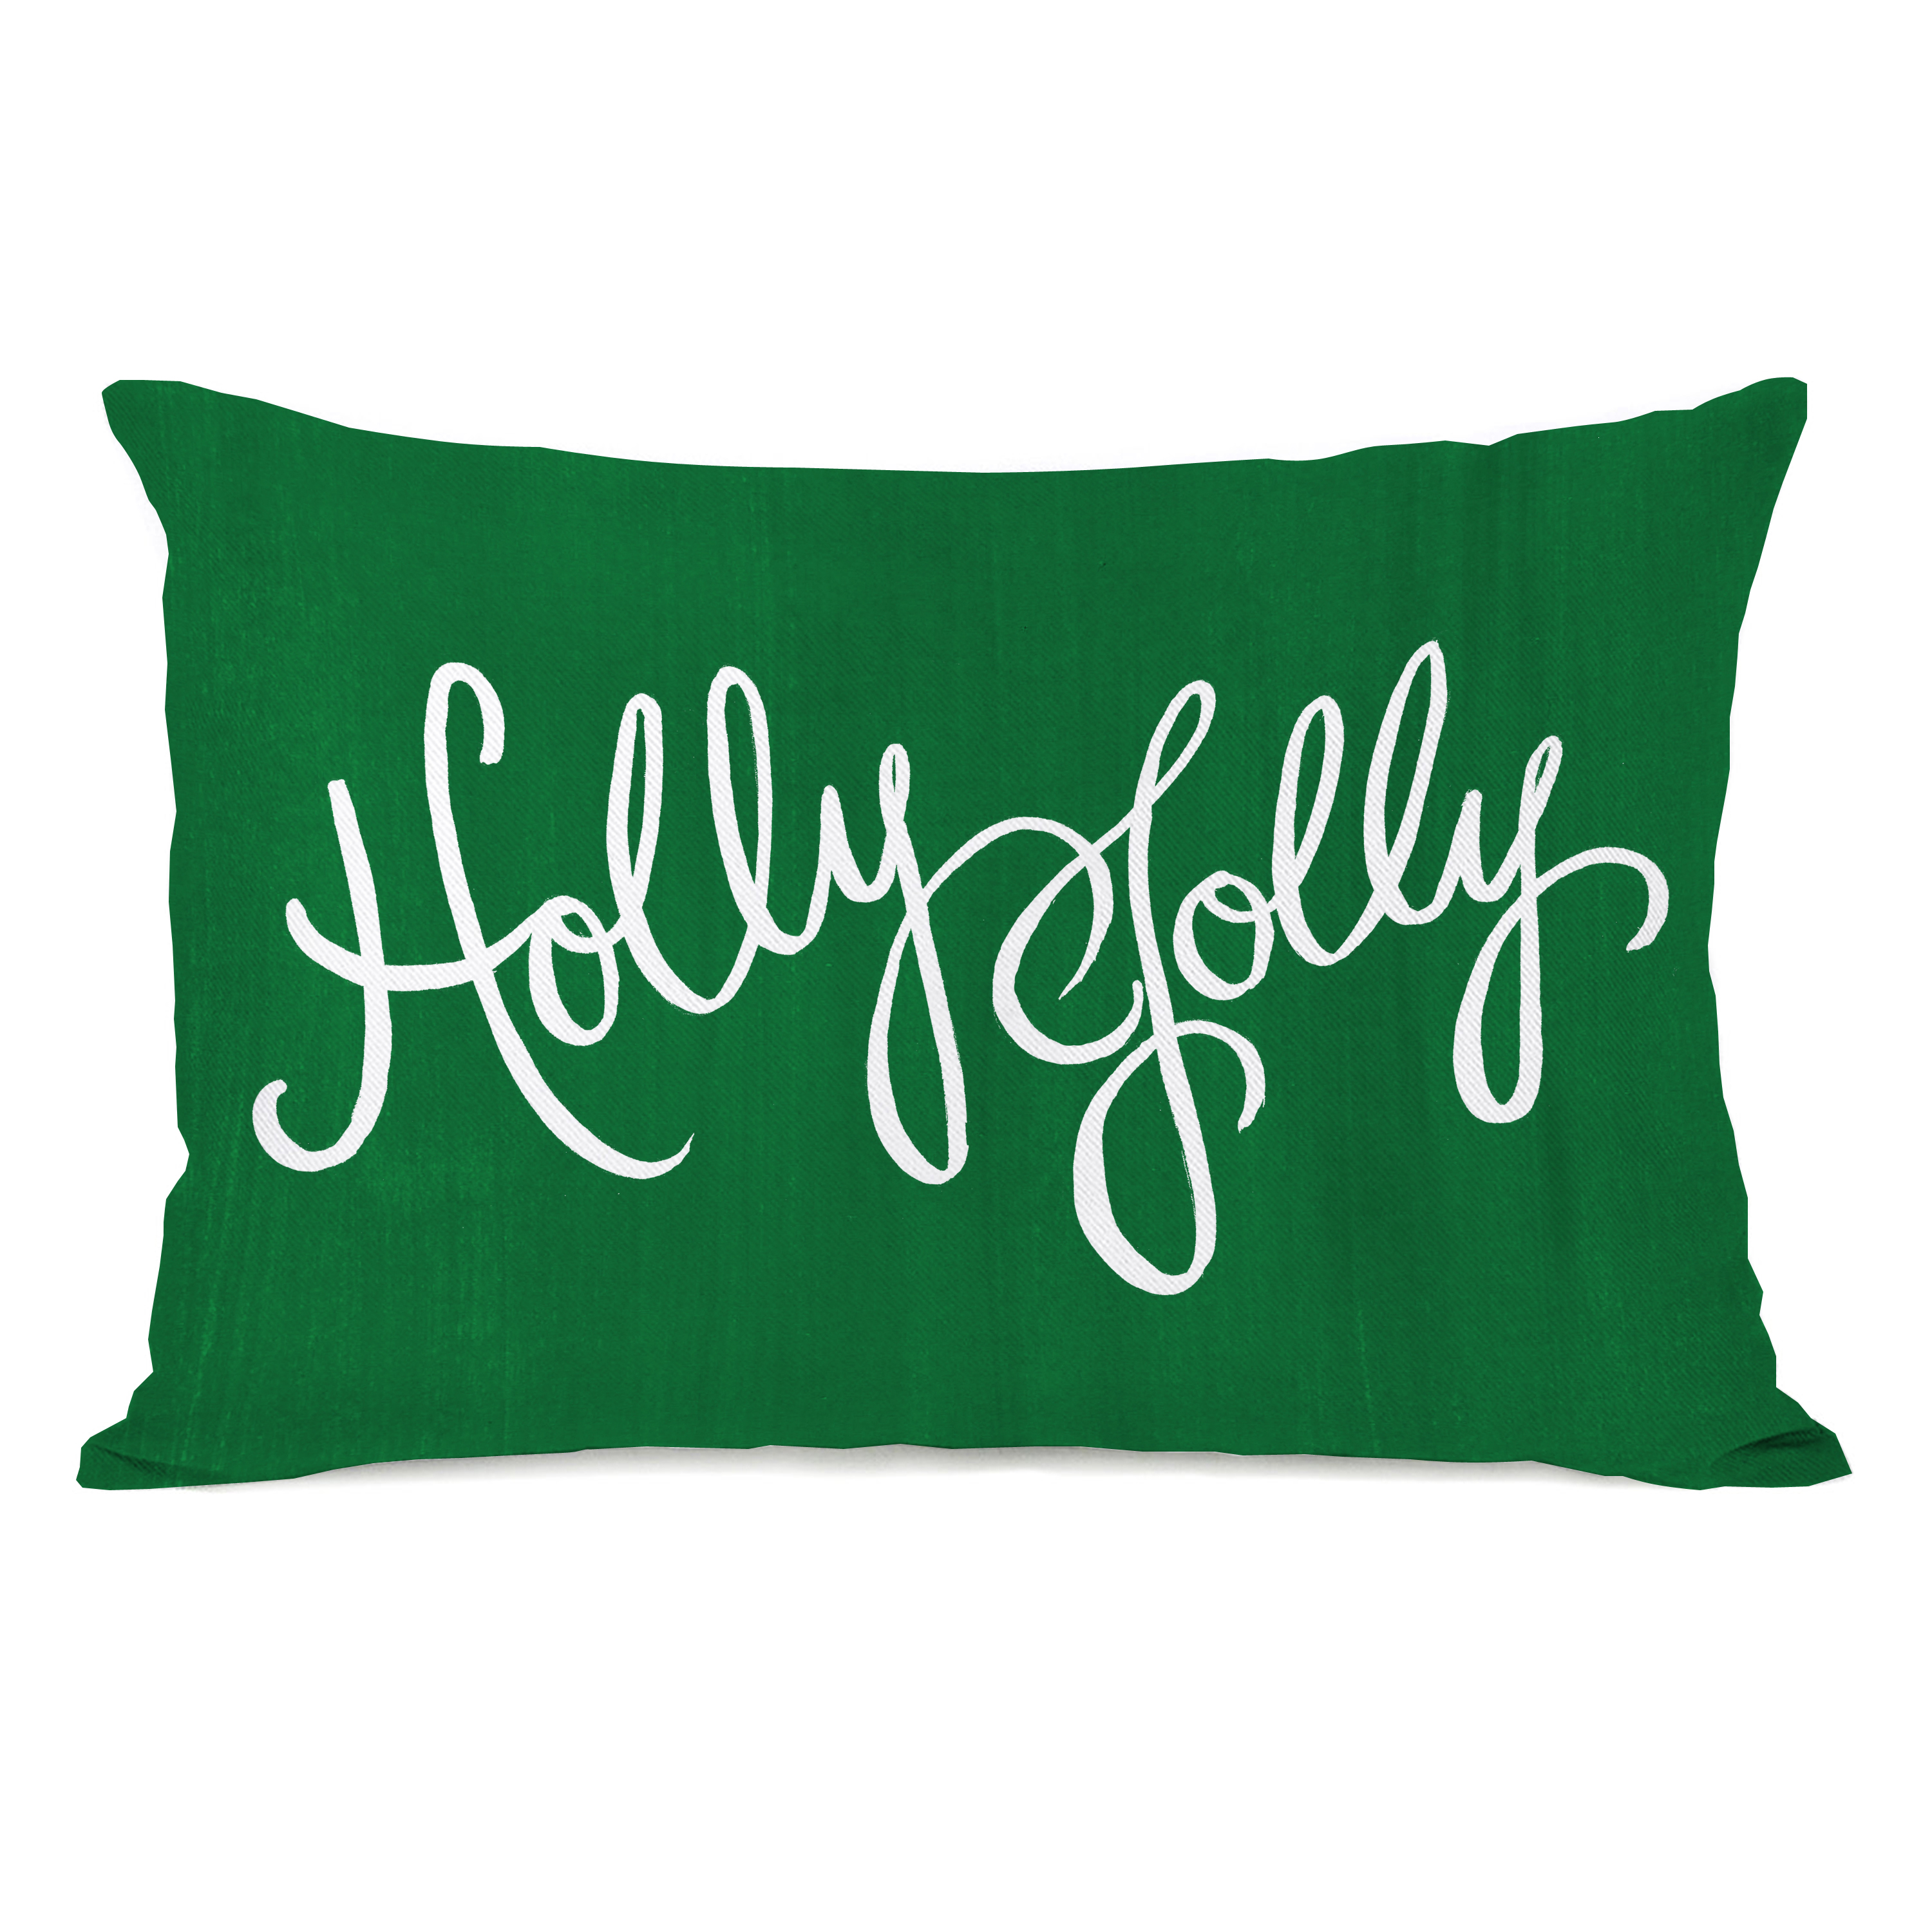 Holly Jolly Script - Green 14x20 Pillow by Timree